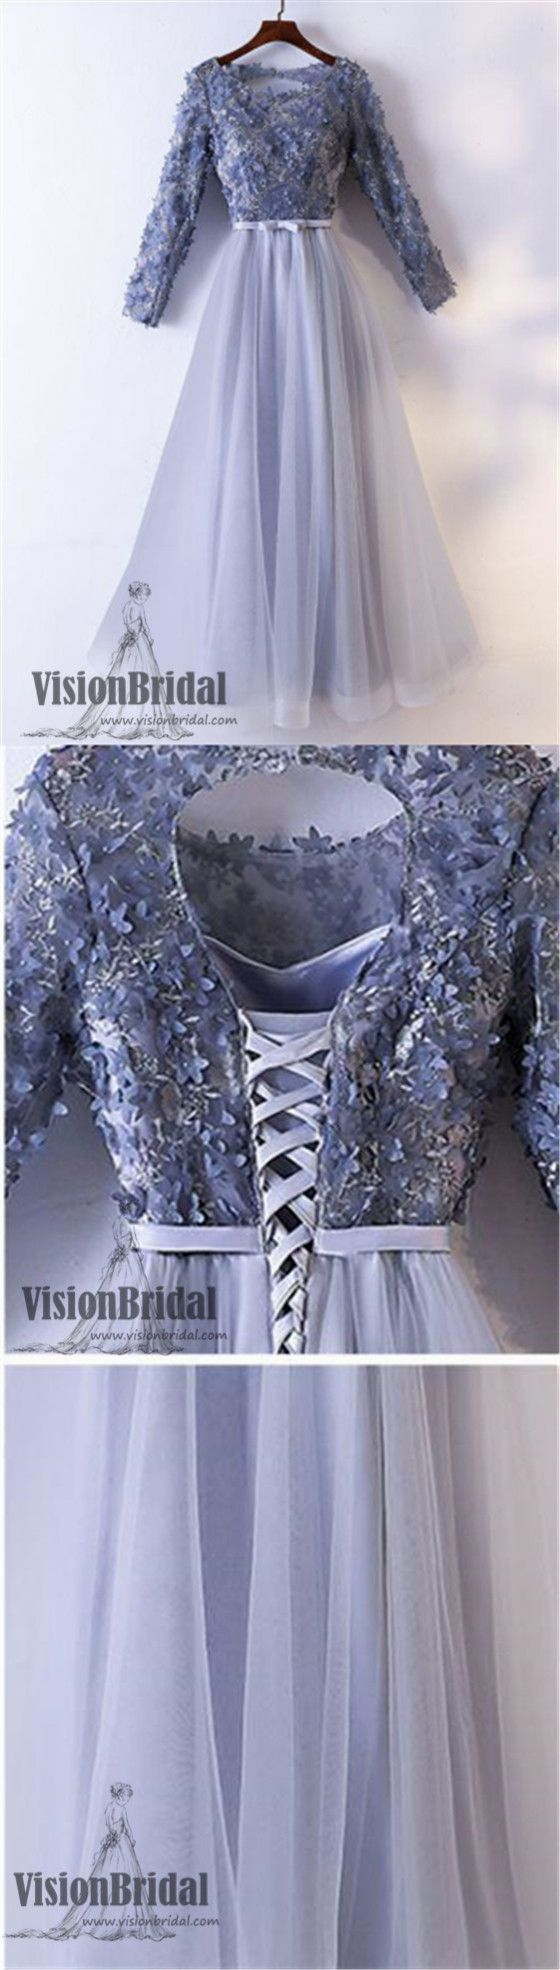 Lavender lace floral prom dress long sleeves lace up tulle prom